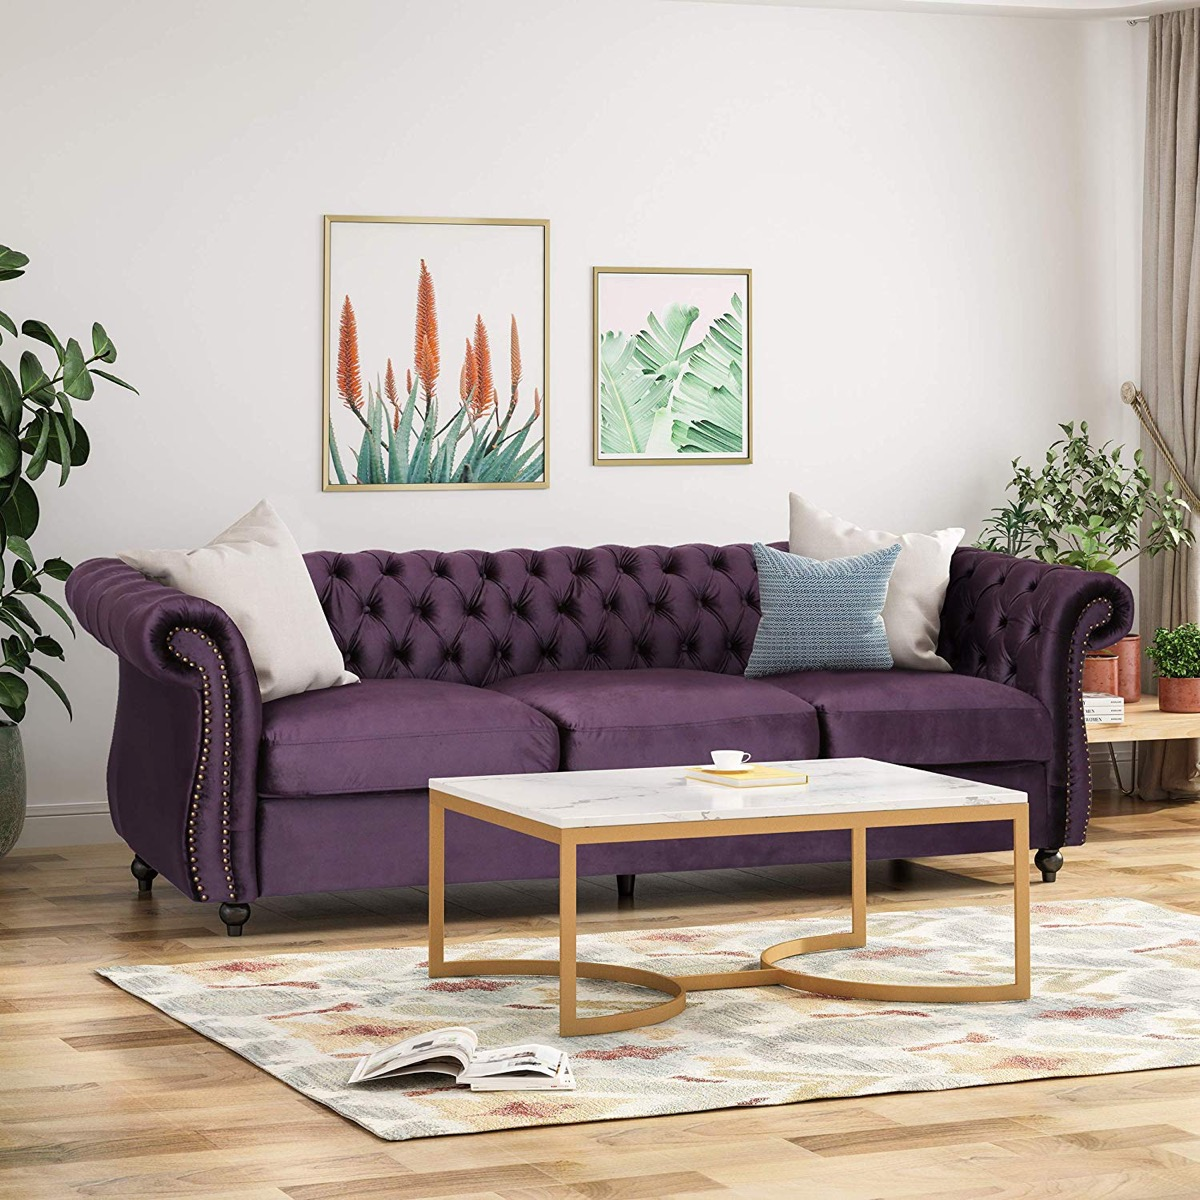 unique-purple-tufted-sofa-with-rolled-arms-and-deep-diamond-velvet-tufting